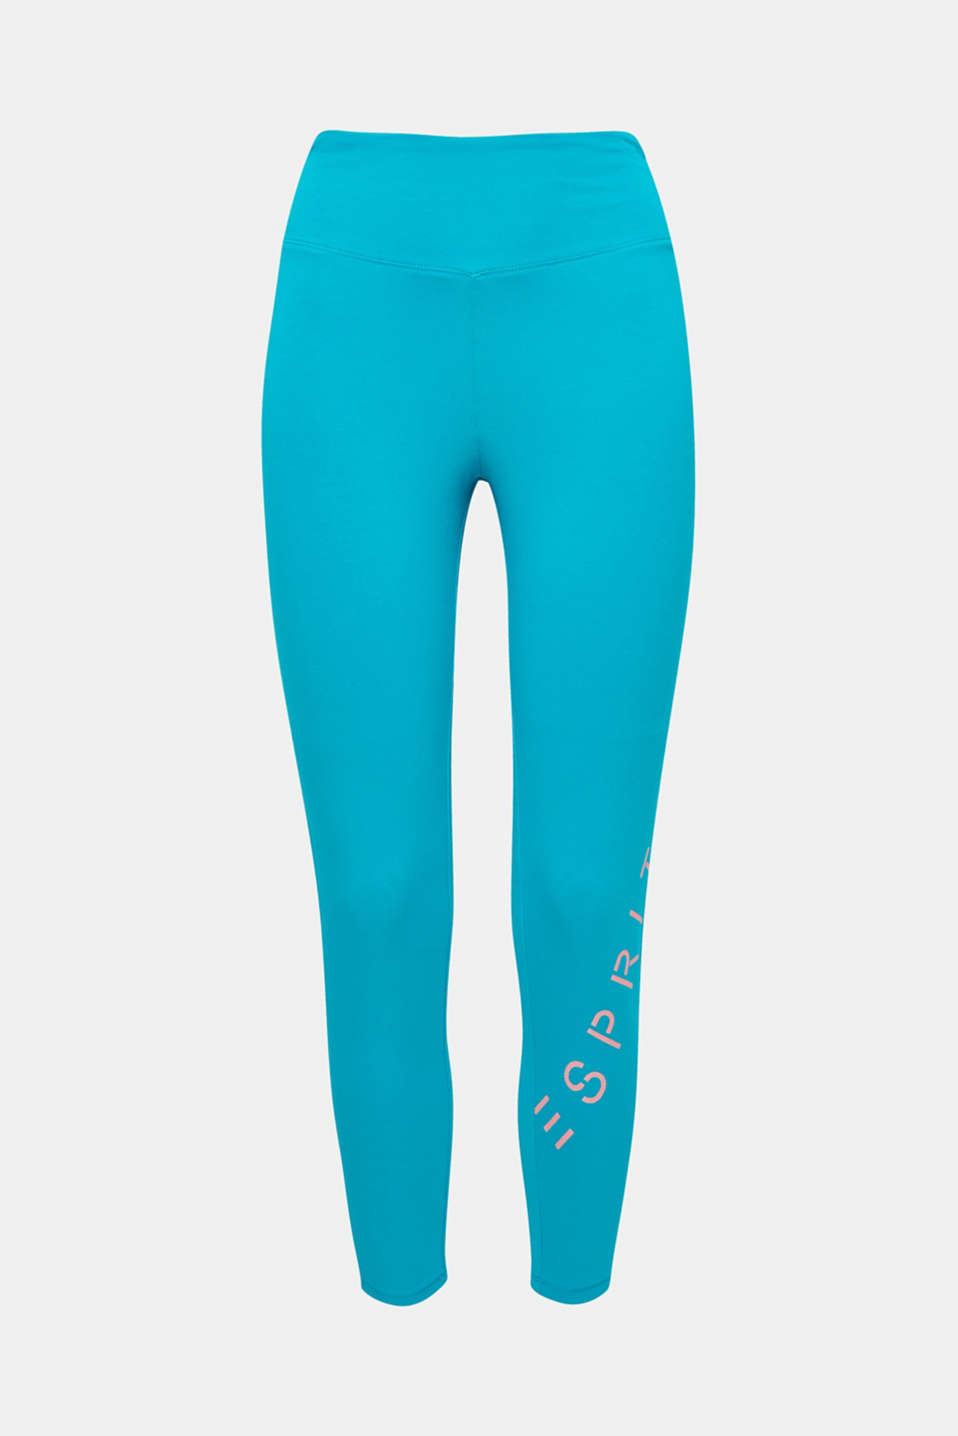 Super comfy and super smart: Active leggings with a wide waistband and reflective logo lettering.